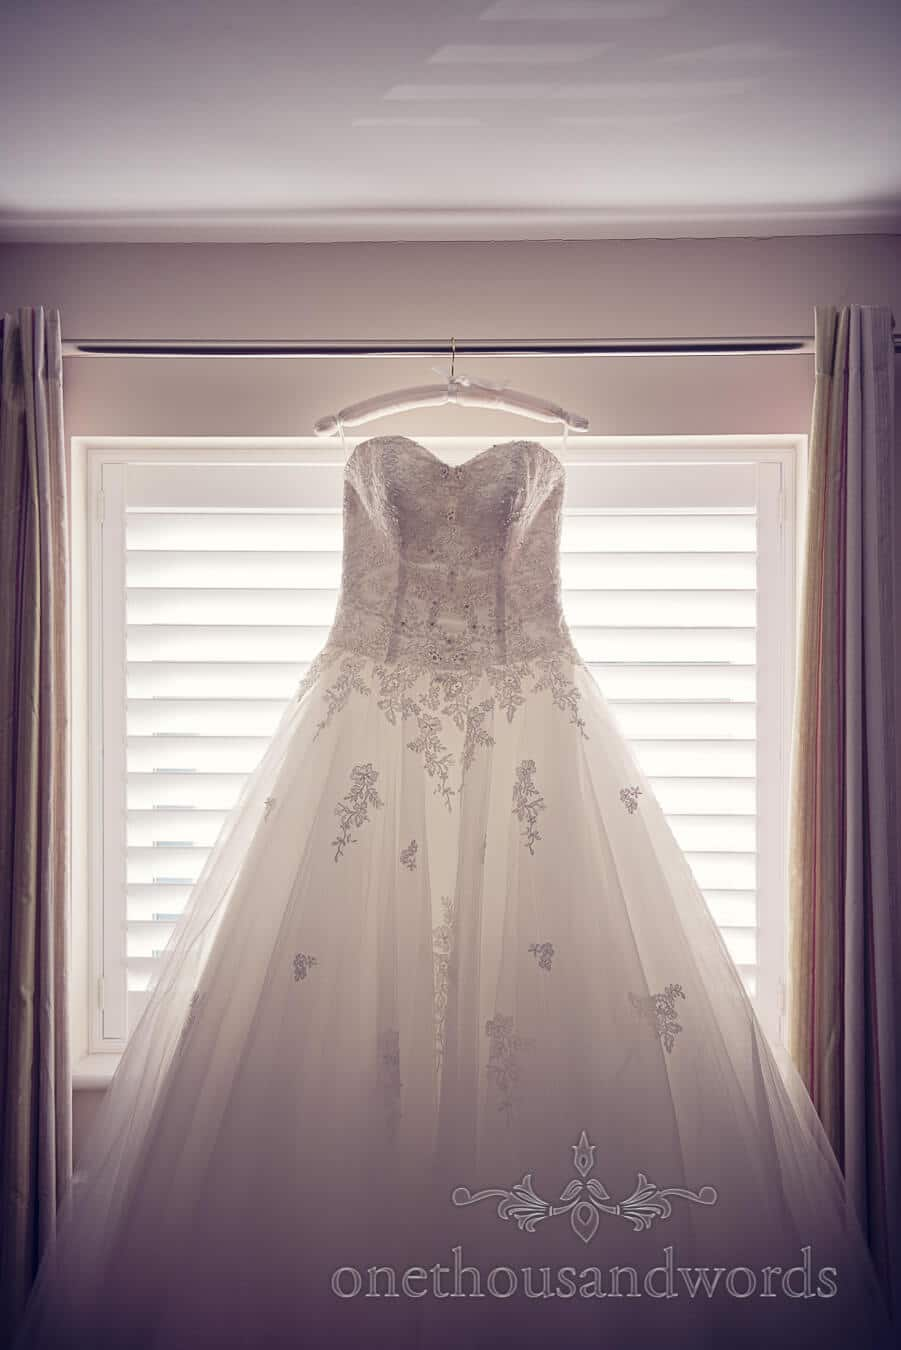 Dress lit in window before Haven hotel wedding